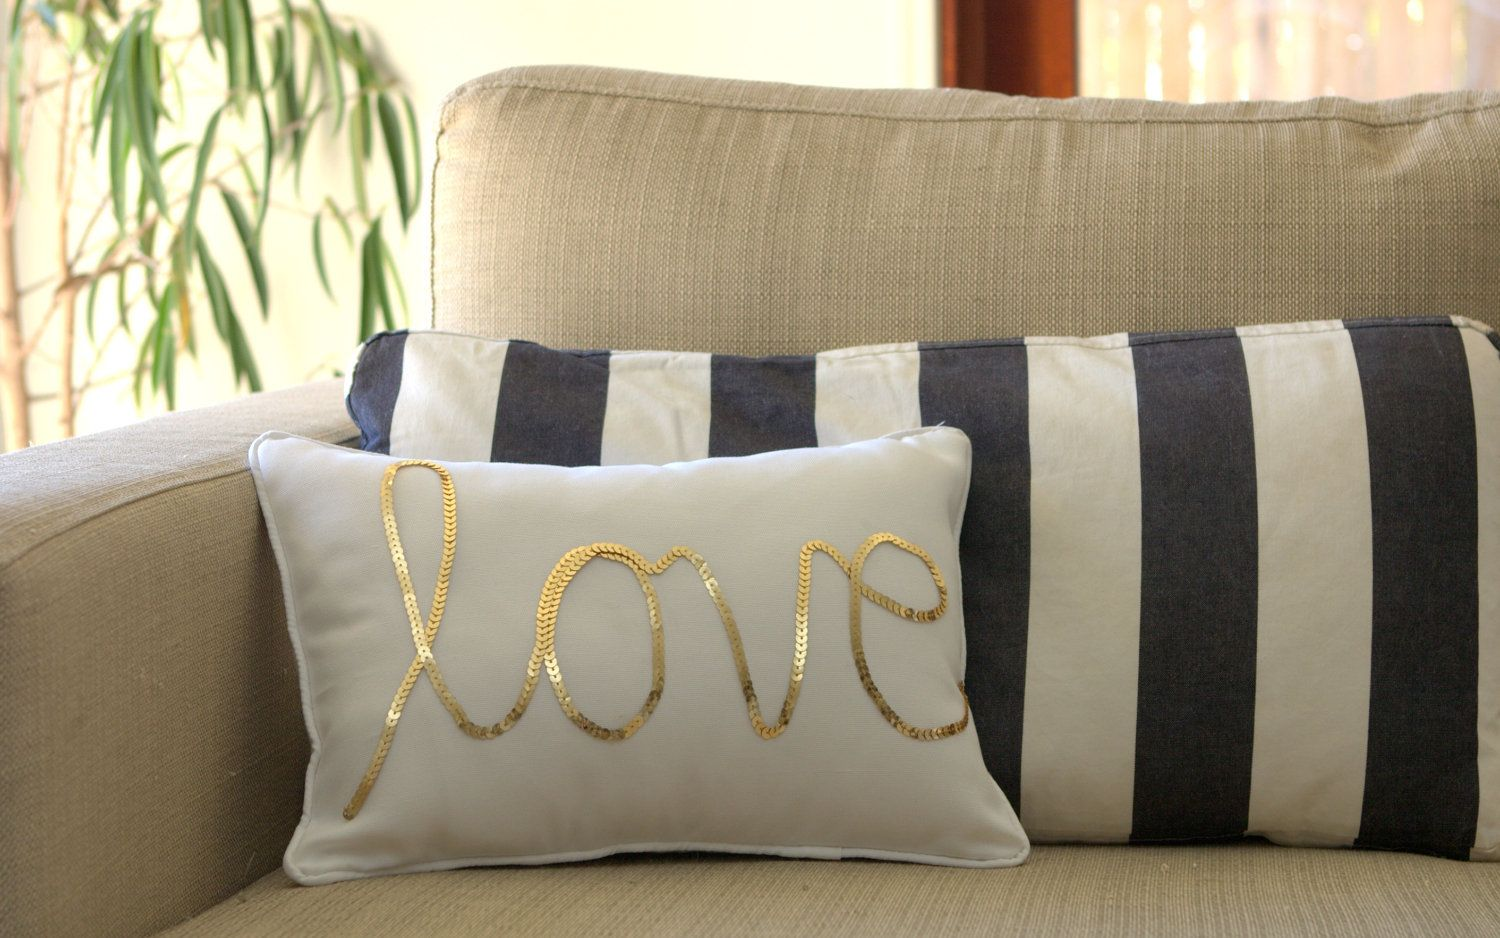 Diydress up a plain throw pillow with some sequins because